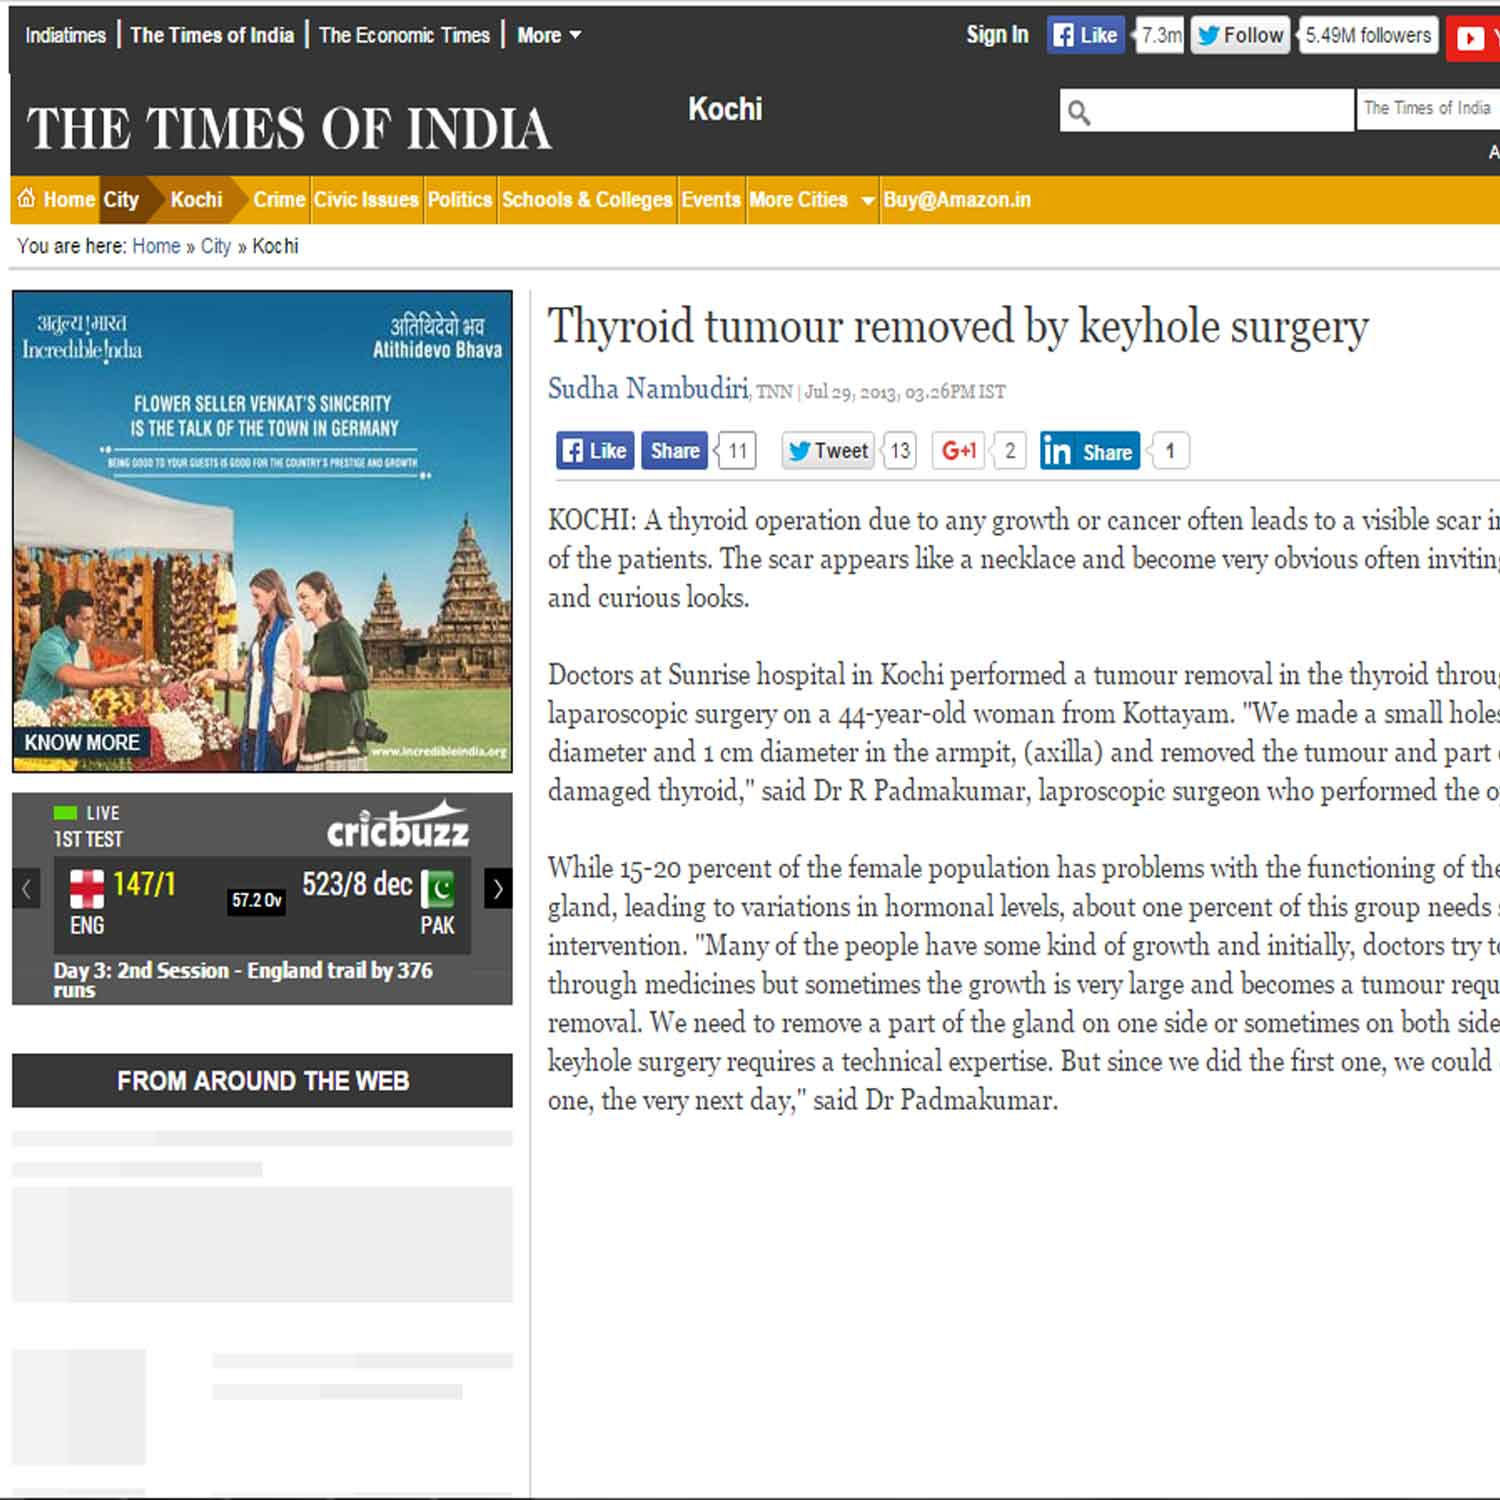 Thyroid tumour removed by keyhole surgery